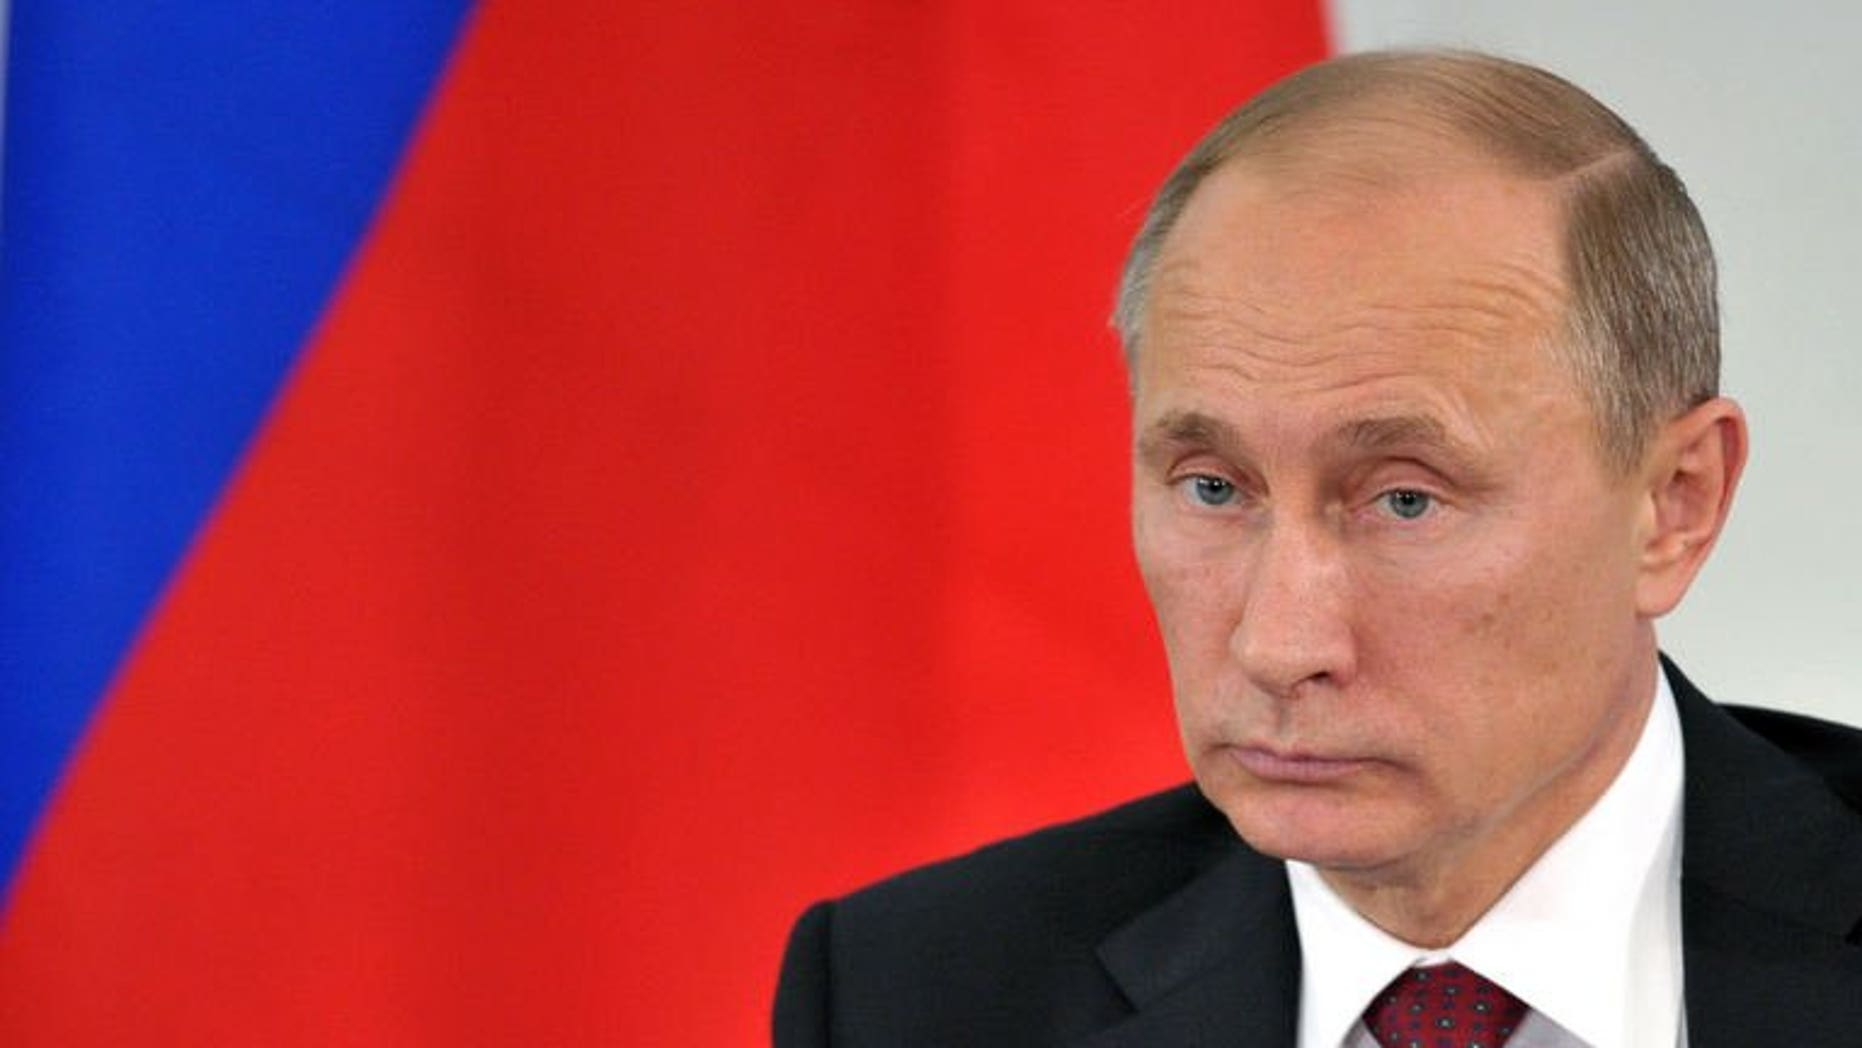 Russian President Vladimir Putin attends a press conference in Prokhorovka, on July 12, 2013. Putin has said US intelligence leaker Edward Snowden -- who has been stuck in a Moscow airport for three weeks -- would leave Russia as soon as he is able.